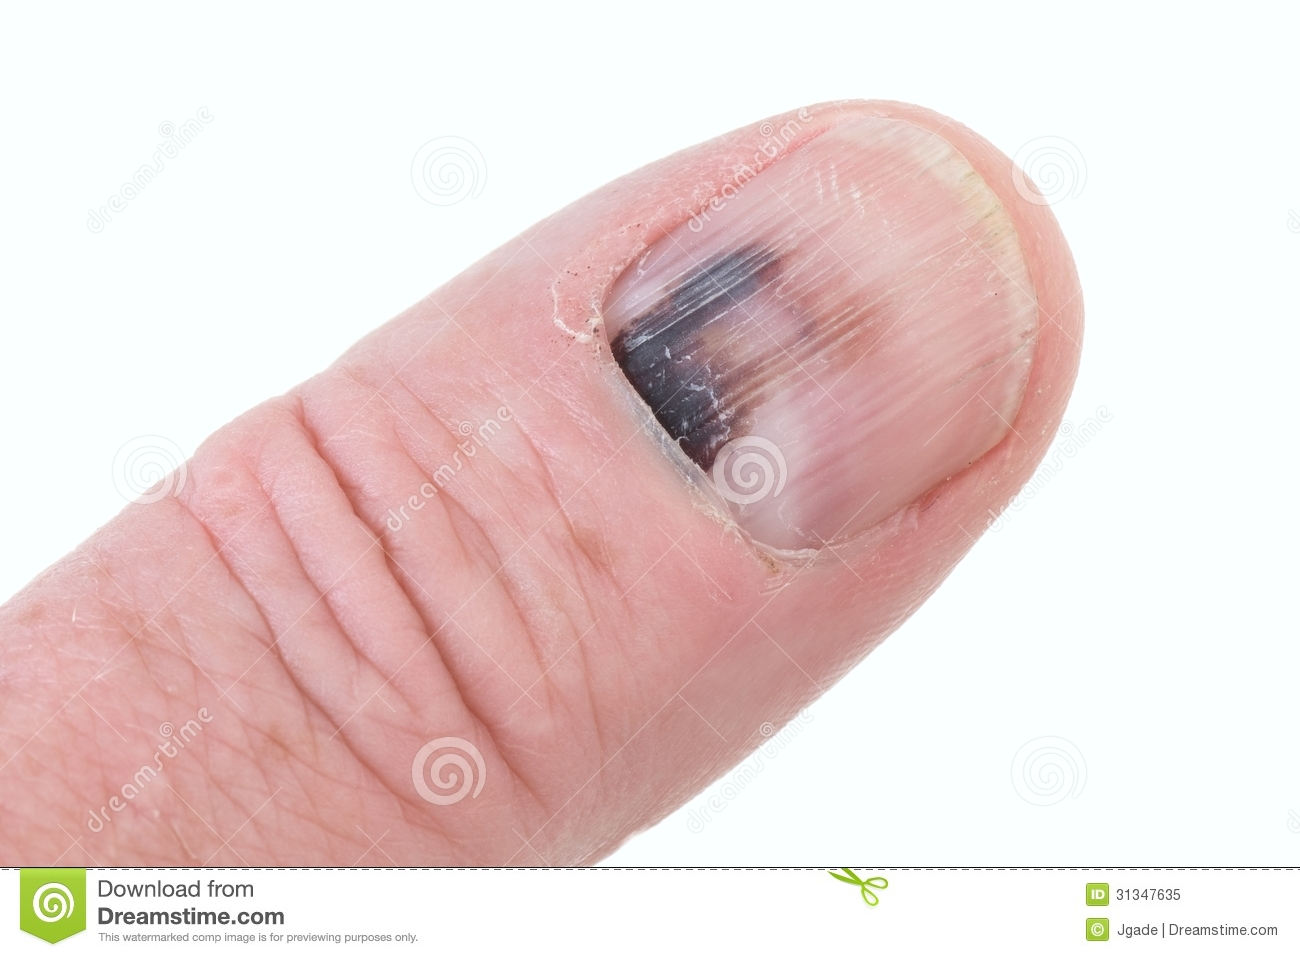 How can i start an informatitve essay on nails?PLEASE HELP!!!?